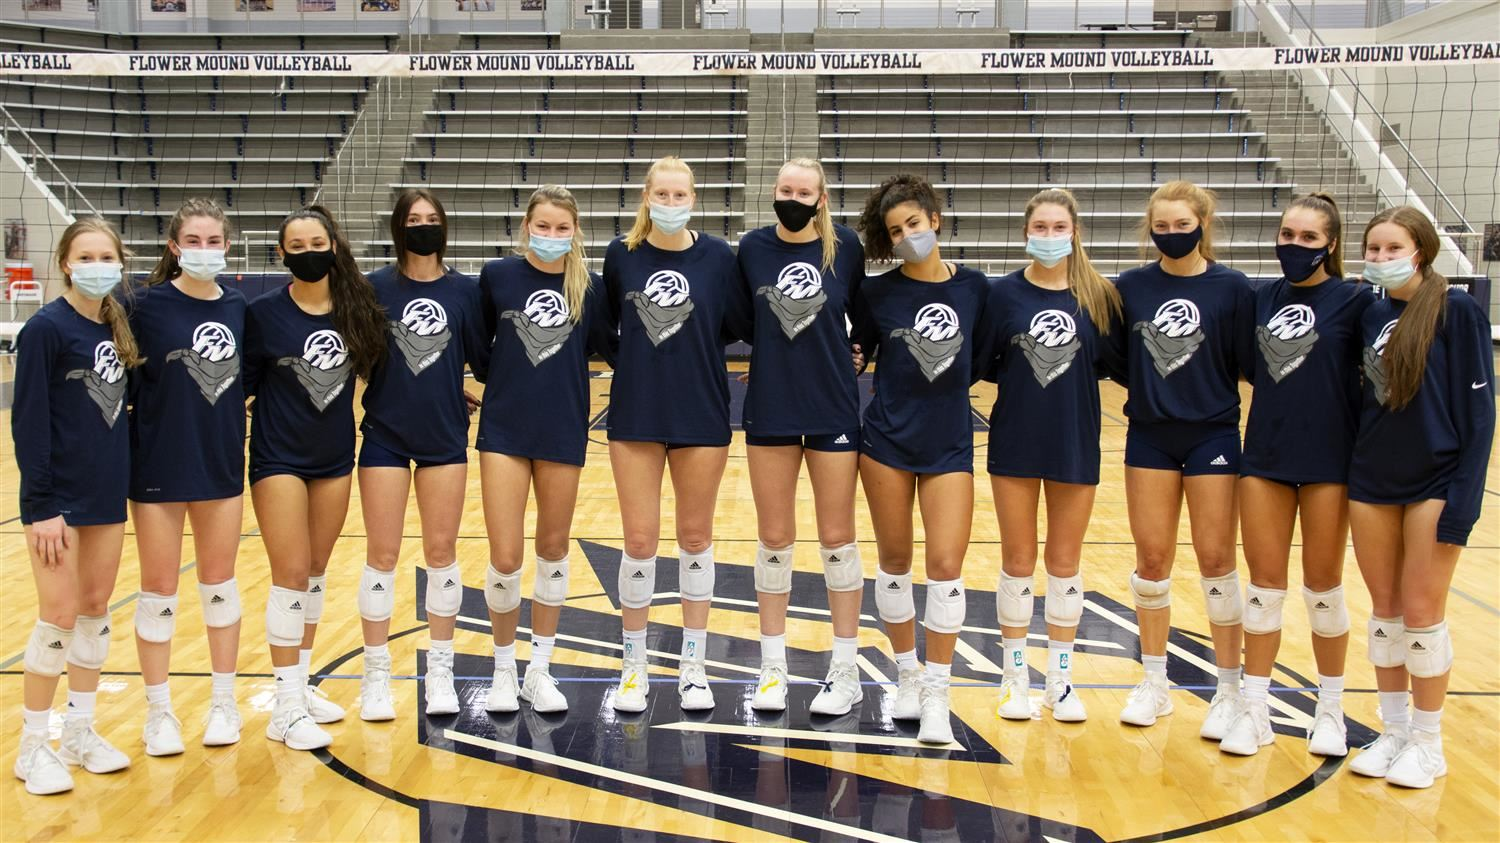 Flower Mound High School Volleyball Program in National Spotlight